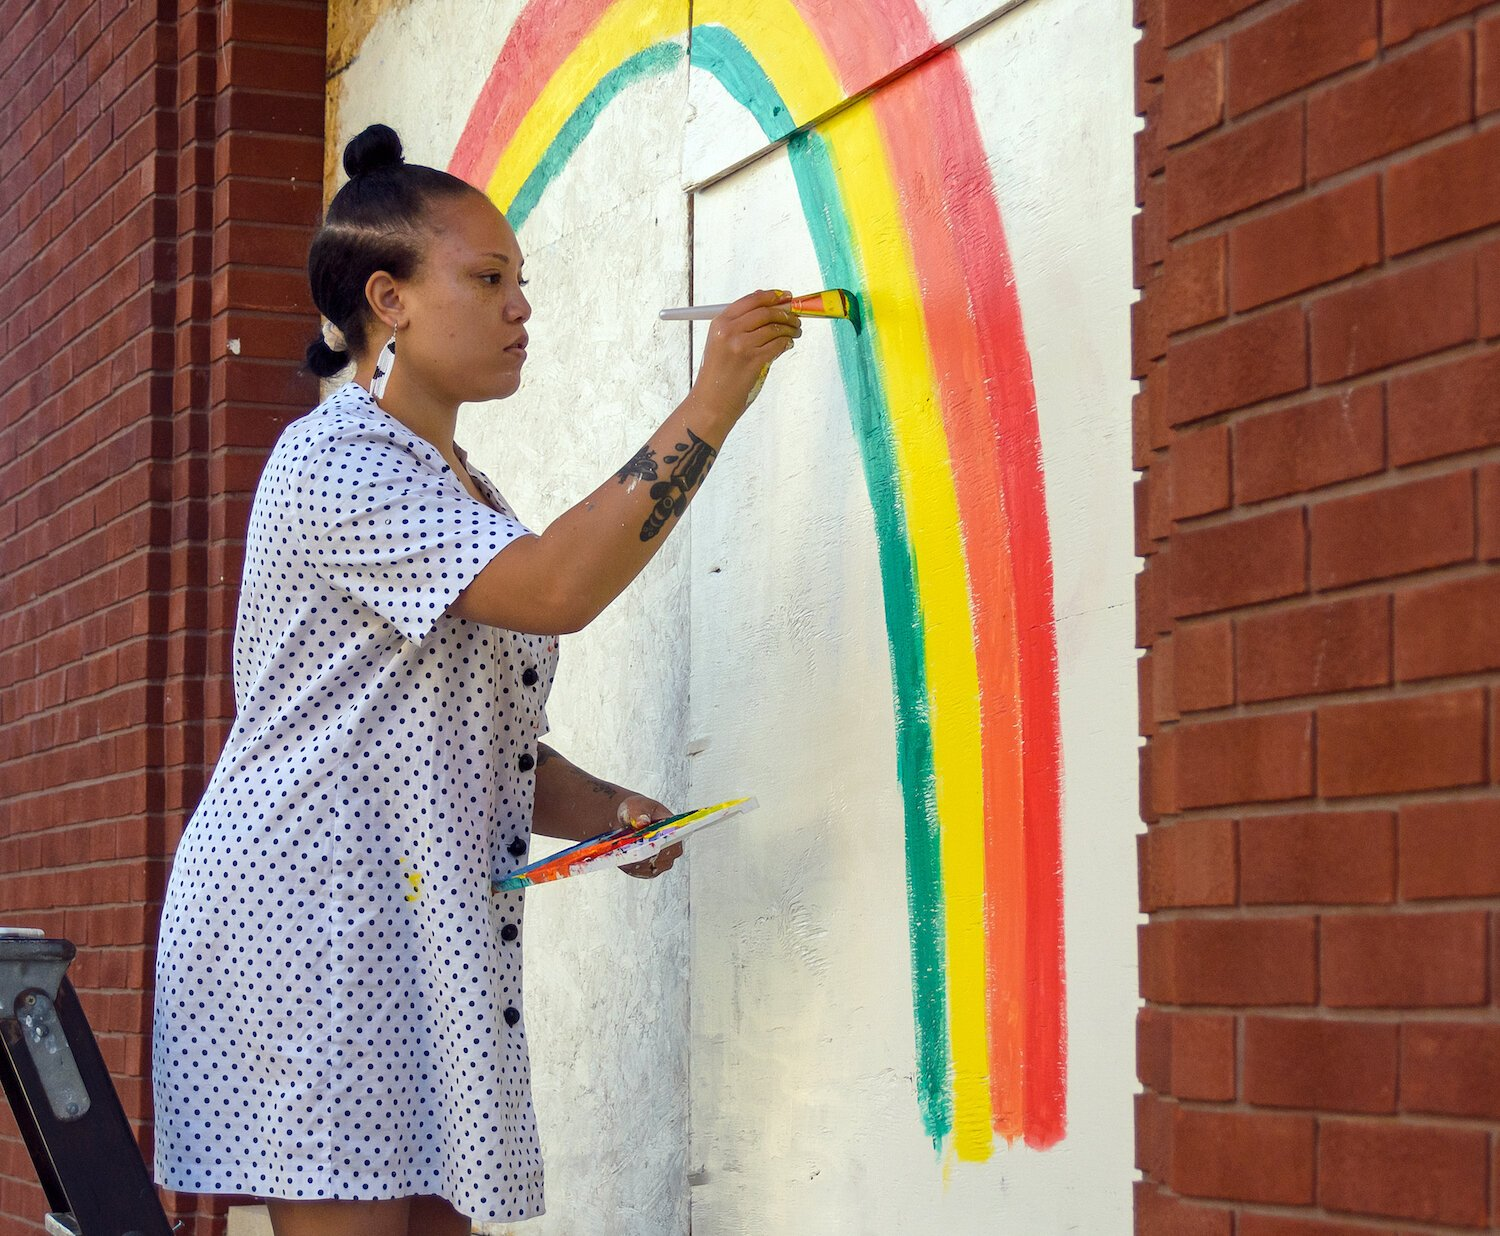 Jasmine Christensen paints a rainbow mural in downtown Fort Wayne.